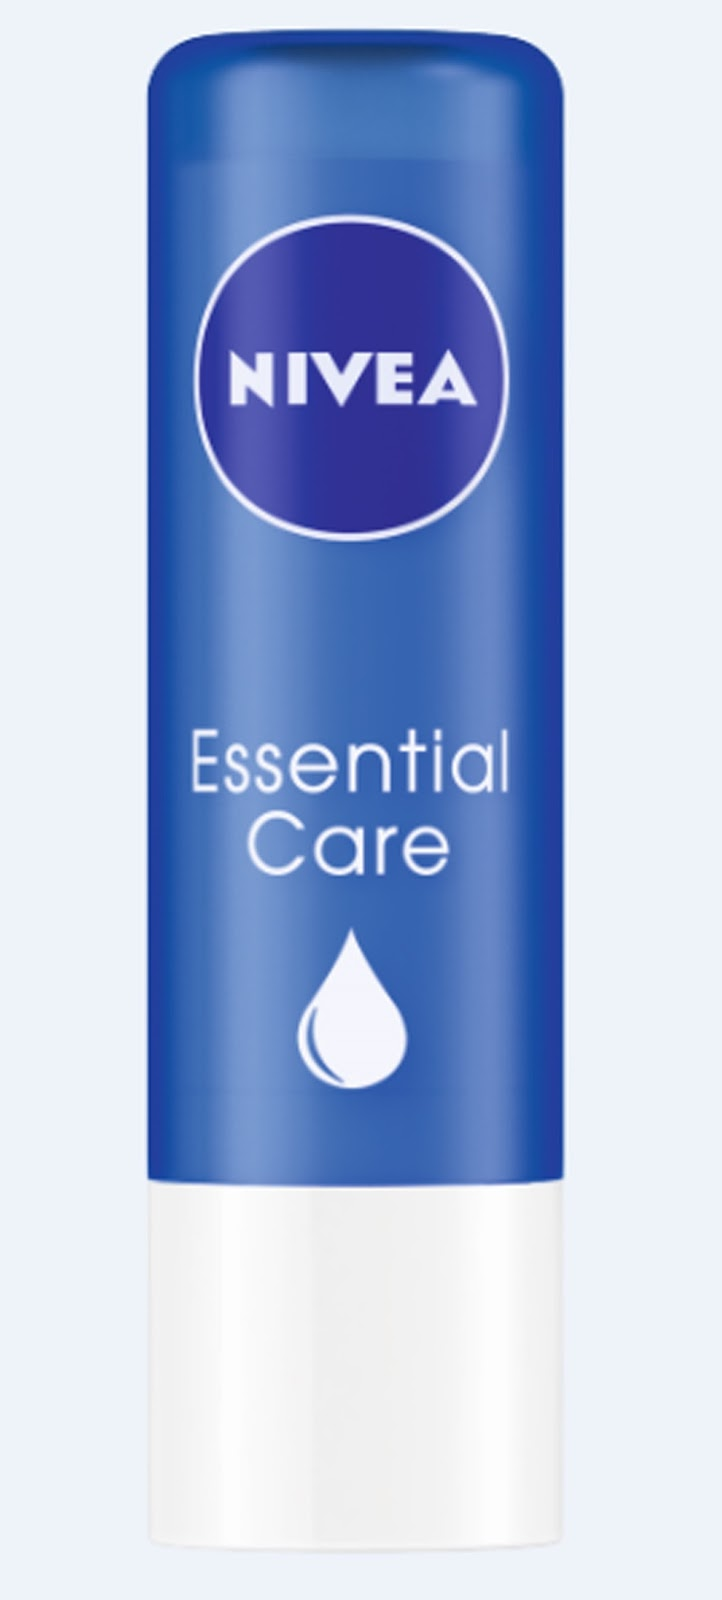 Nivea Winter Care Range